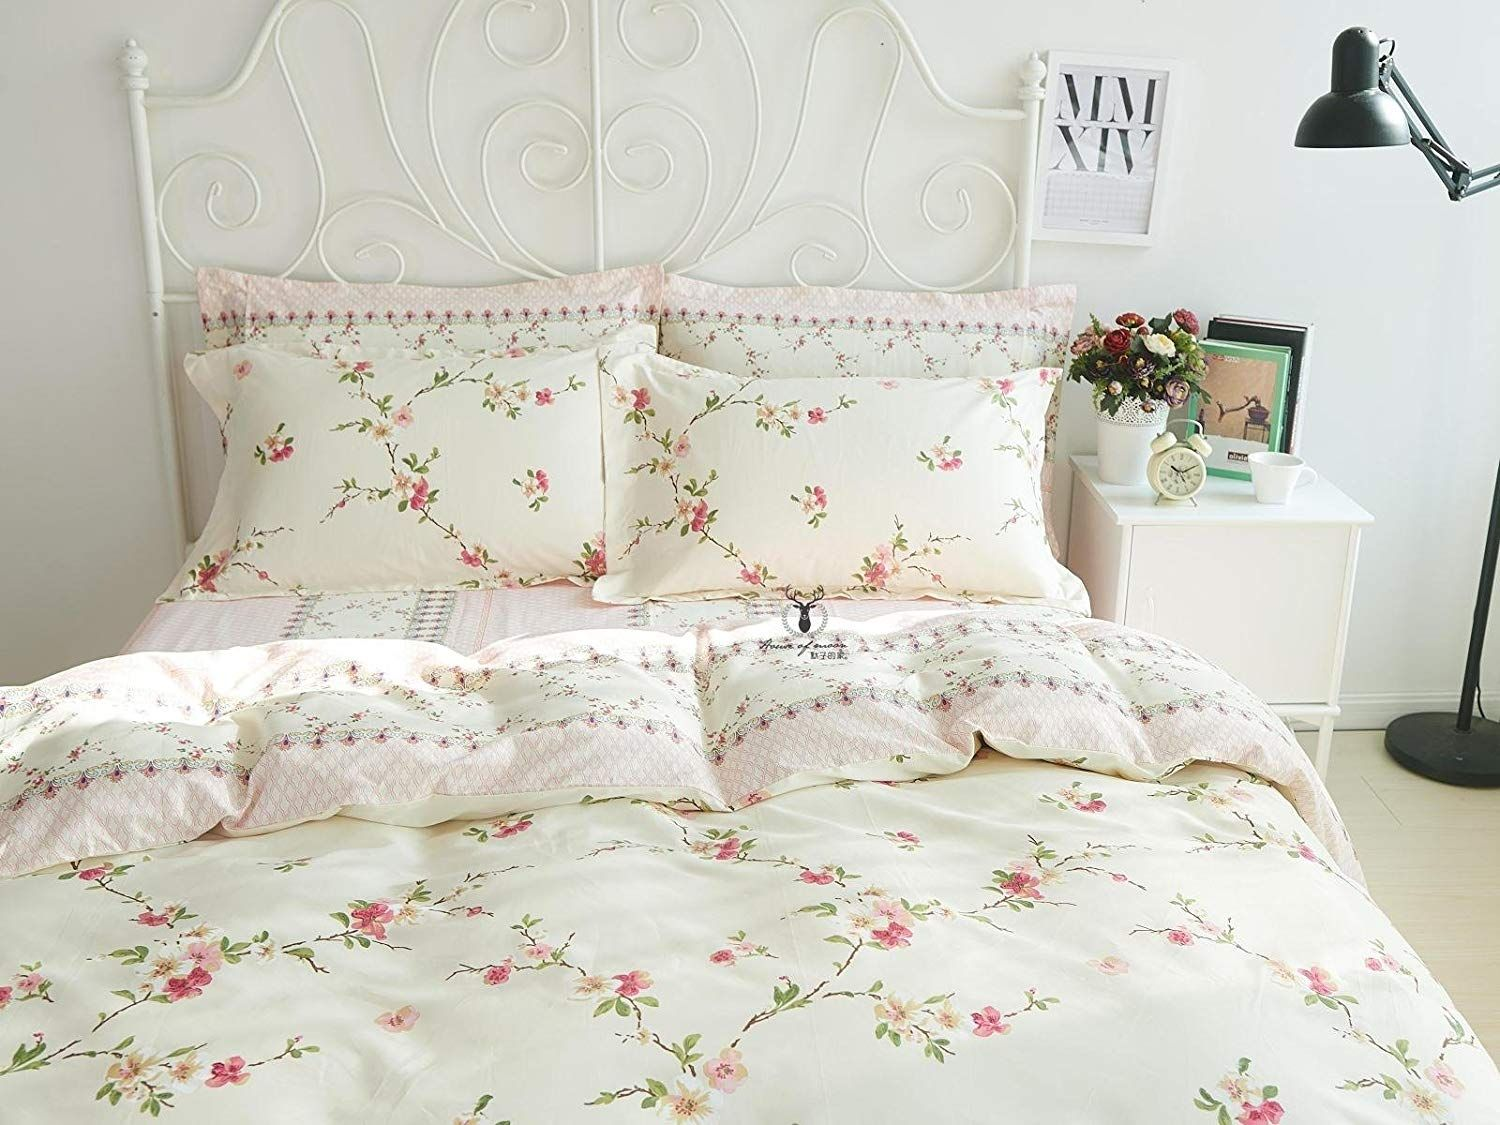 Fadfay Girls Shabby Duvet Cover Sets Floral Cotton Bedding Set